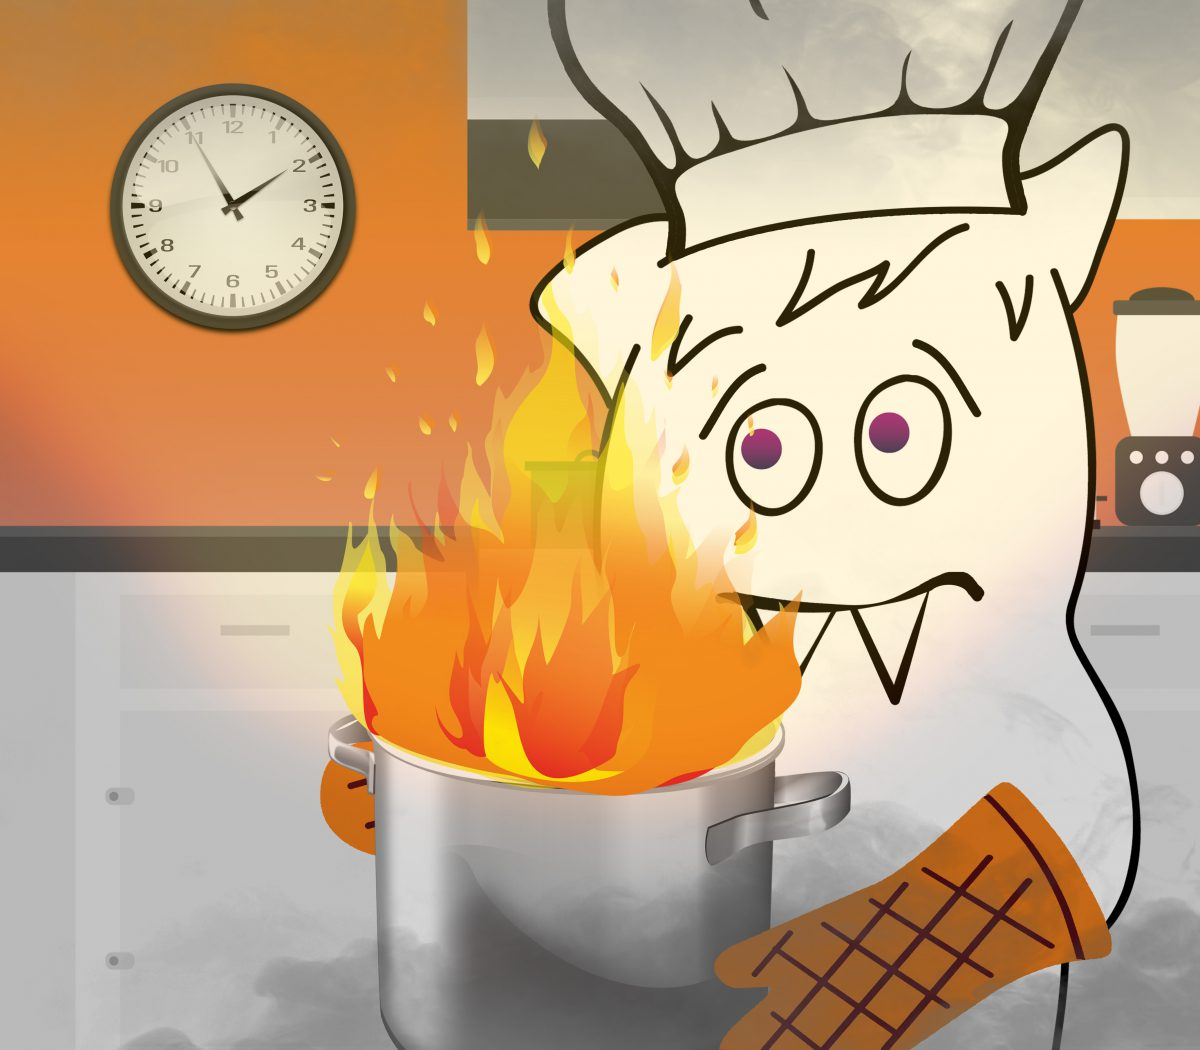 5 reasons tight deadlines are a recipe for disaster. Toothy dealing with a fire in the kitchen.